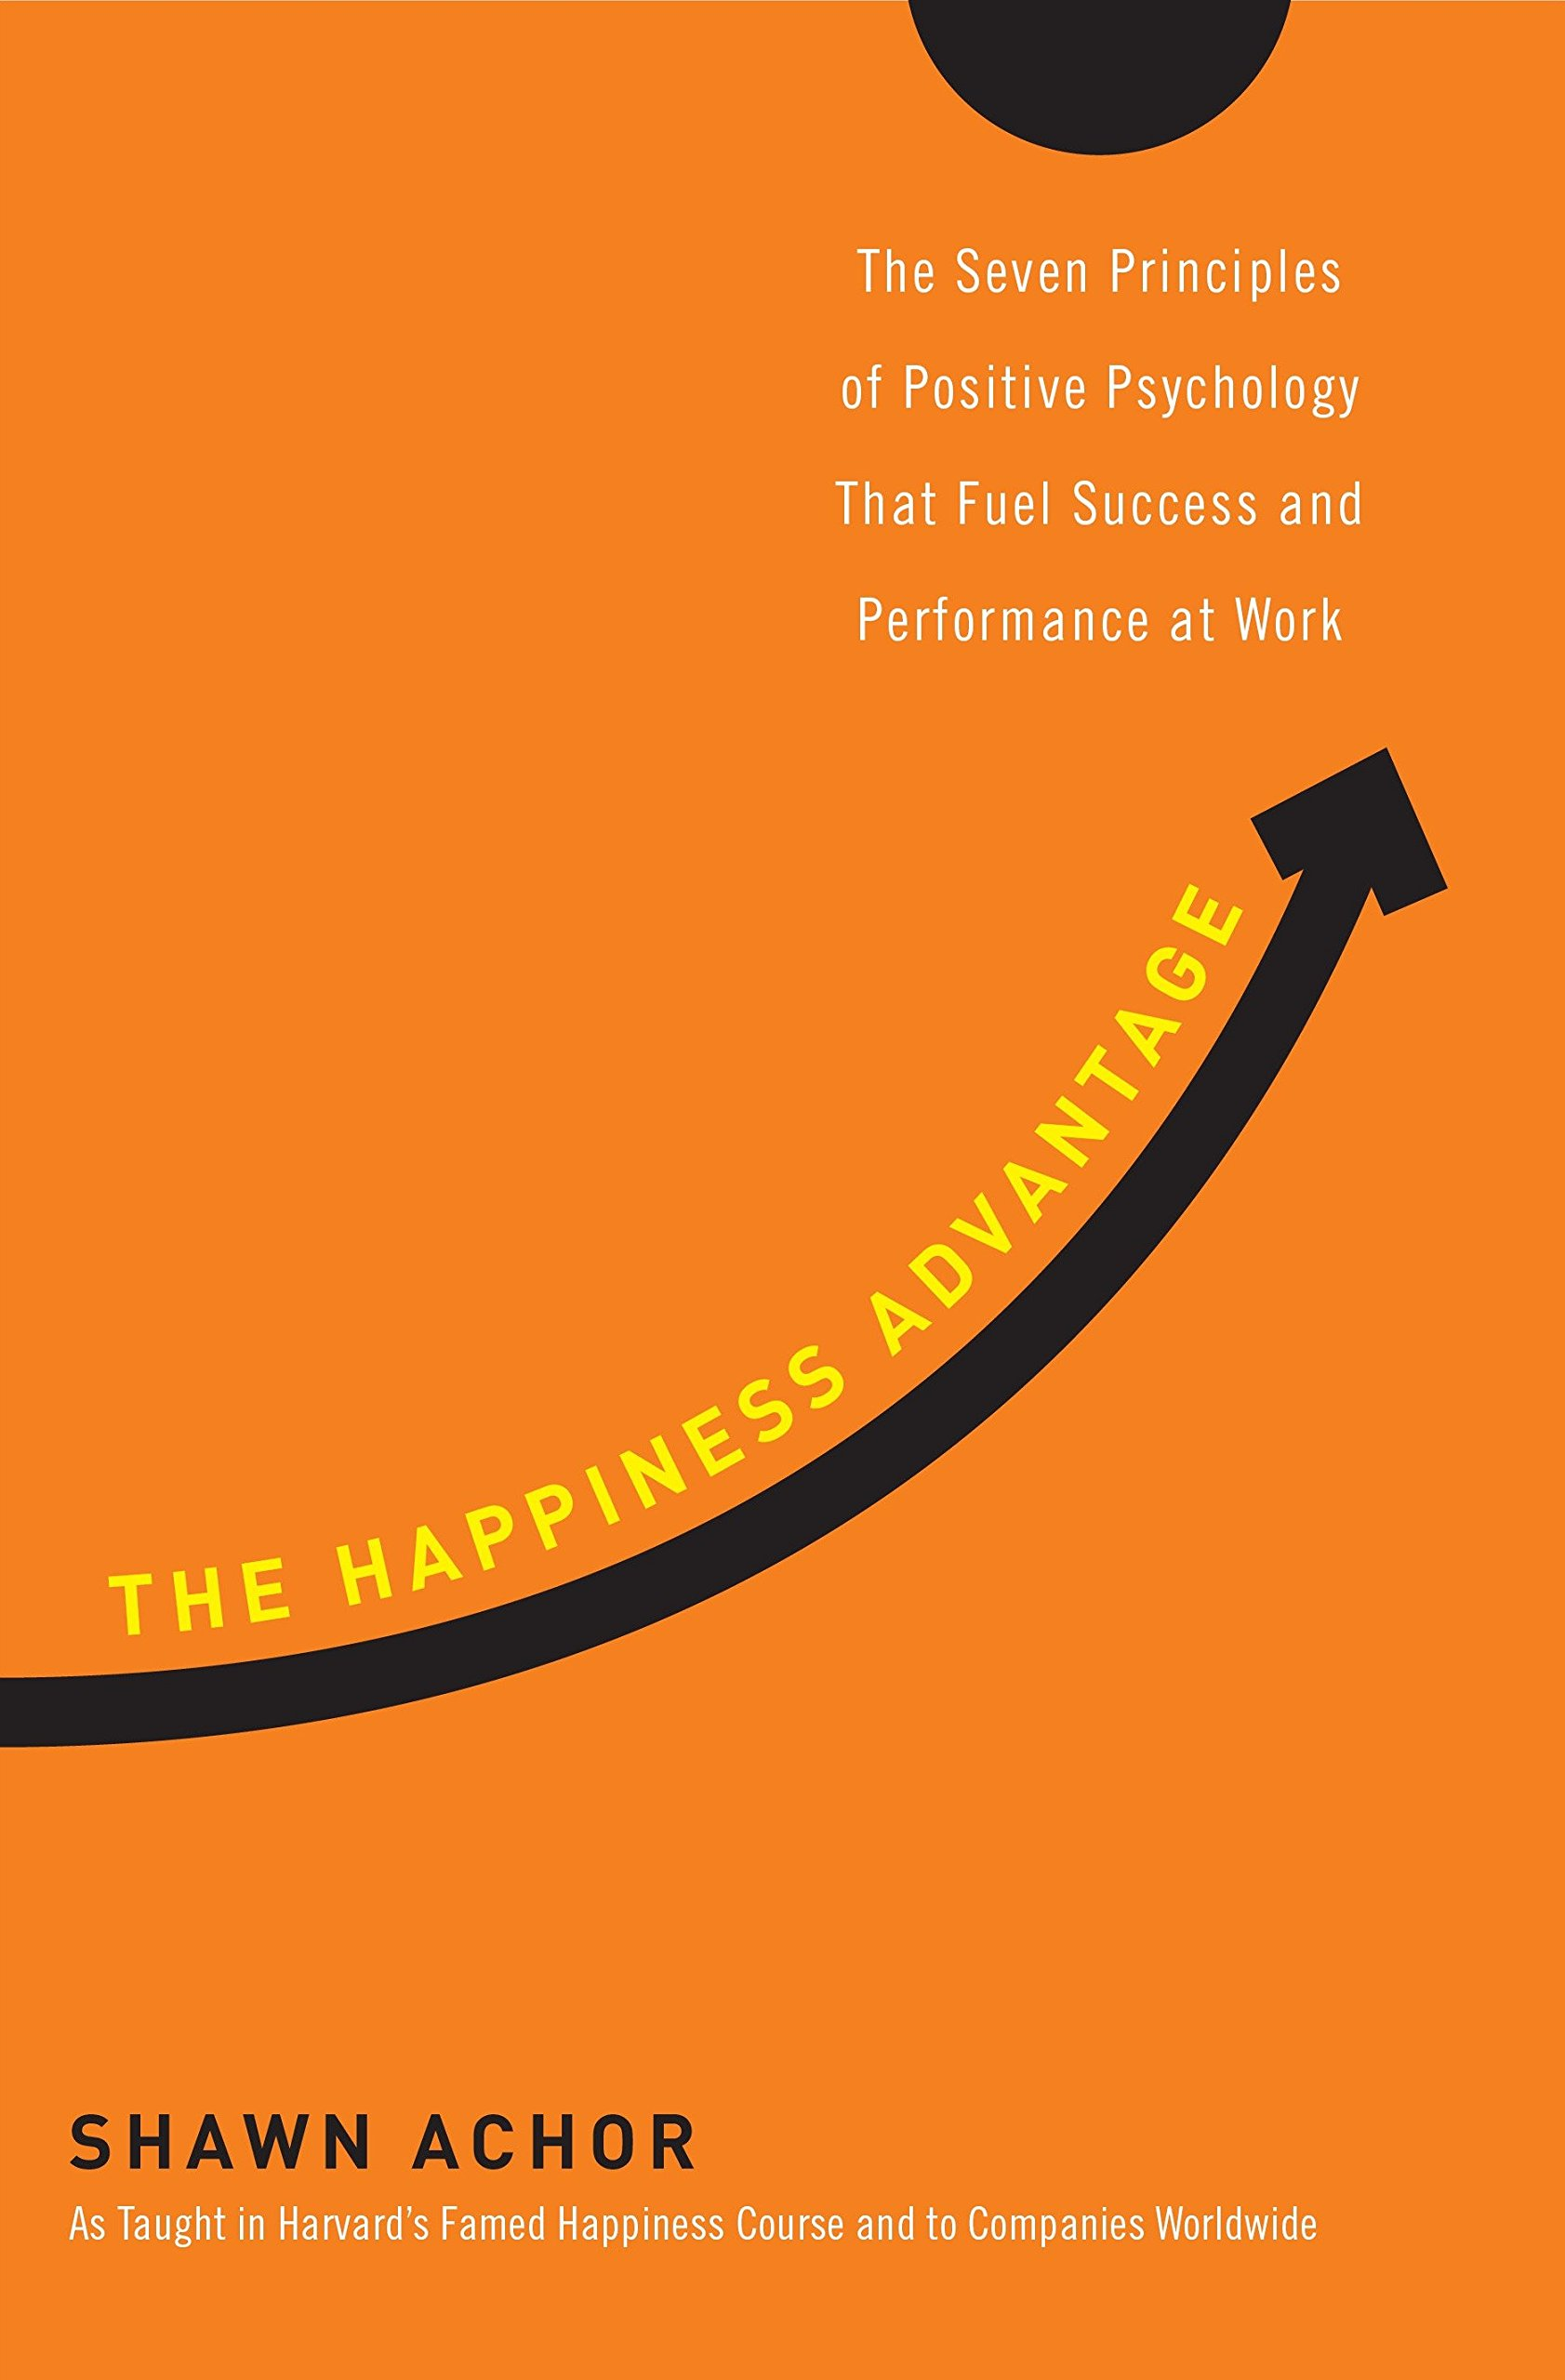 Download The Happiness Advantage Summary